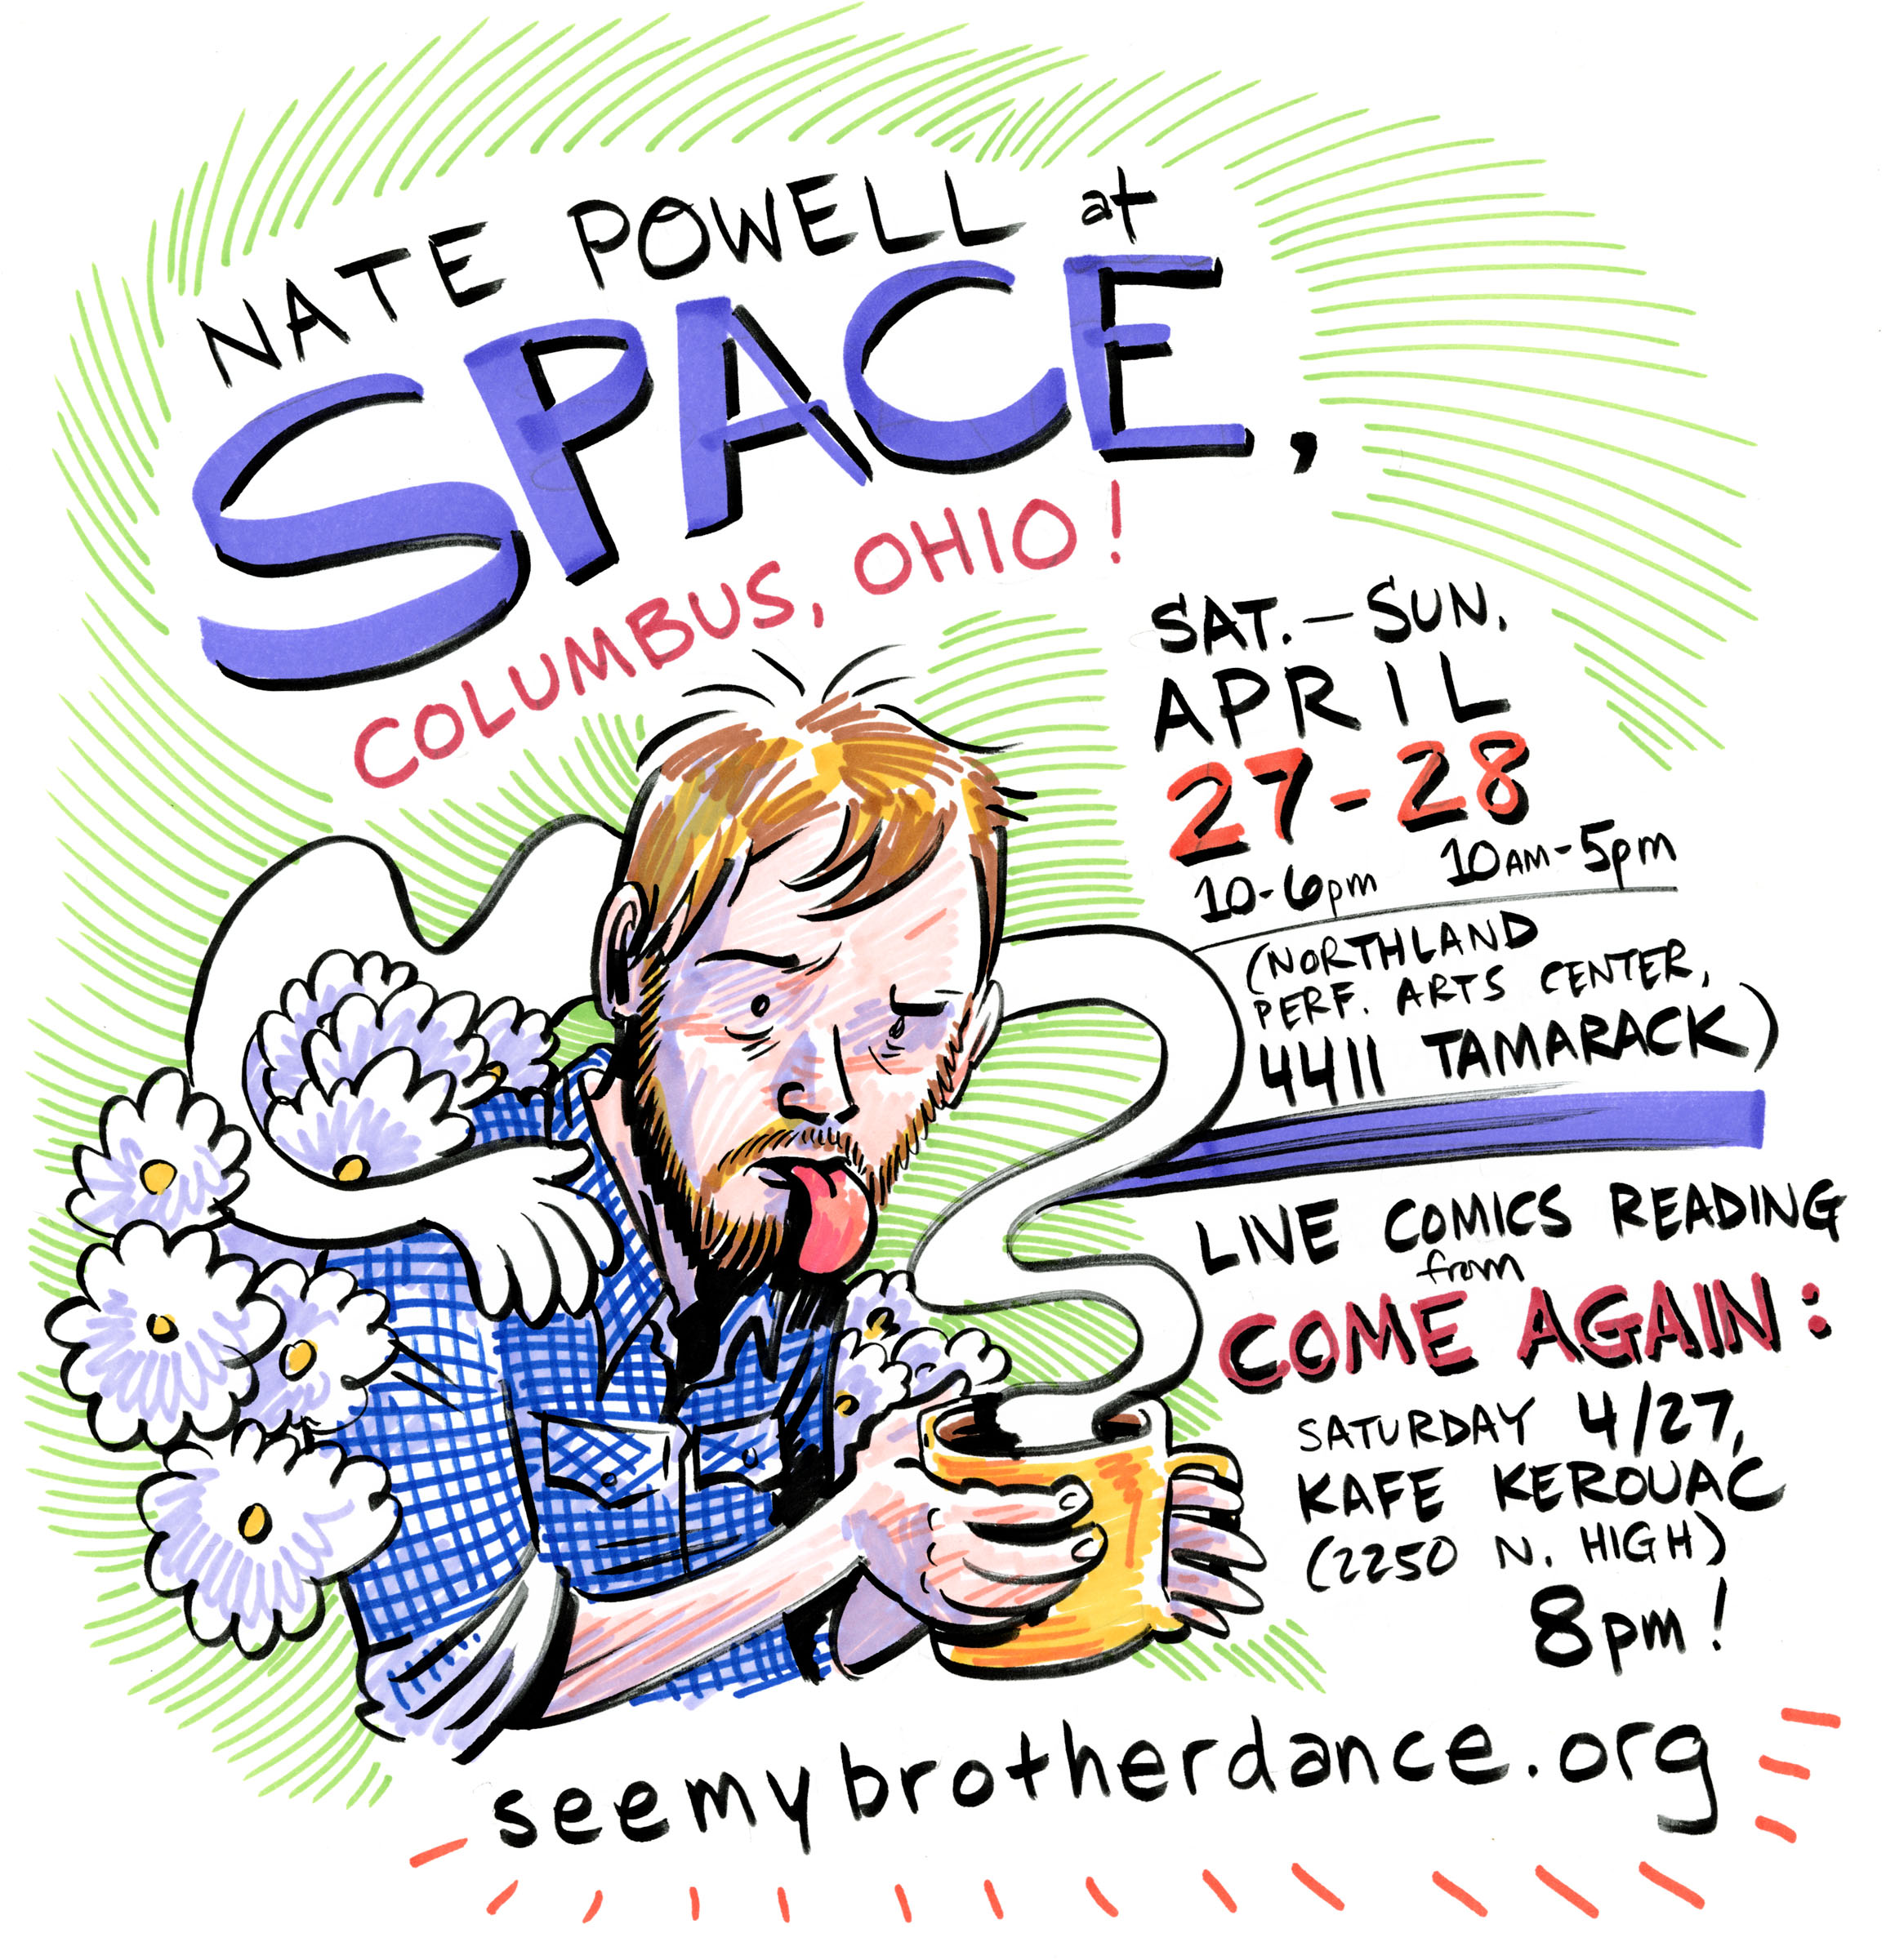 Nate Powell 2019 SPACE post art.jpg